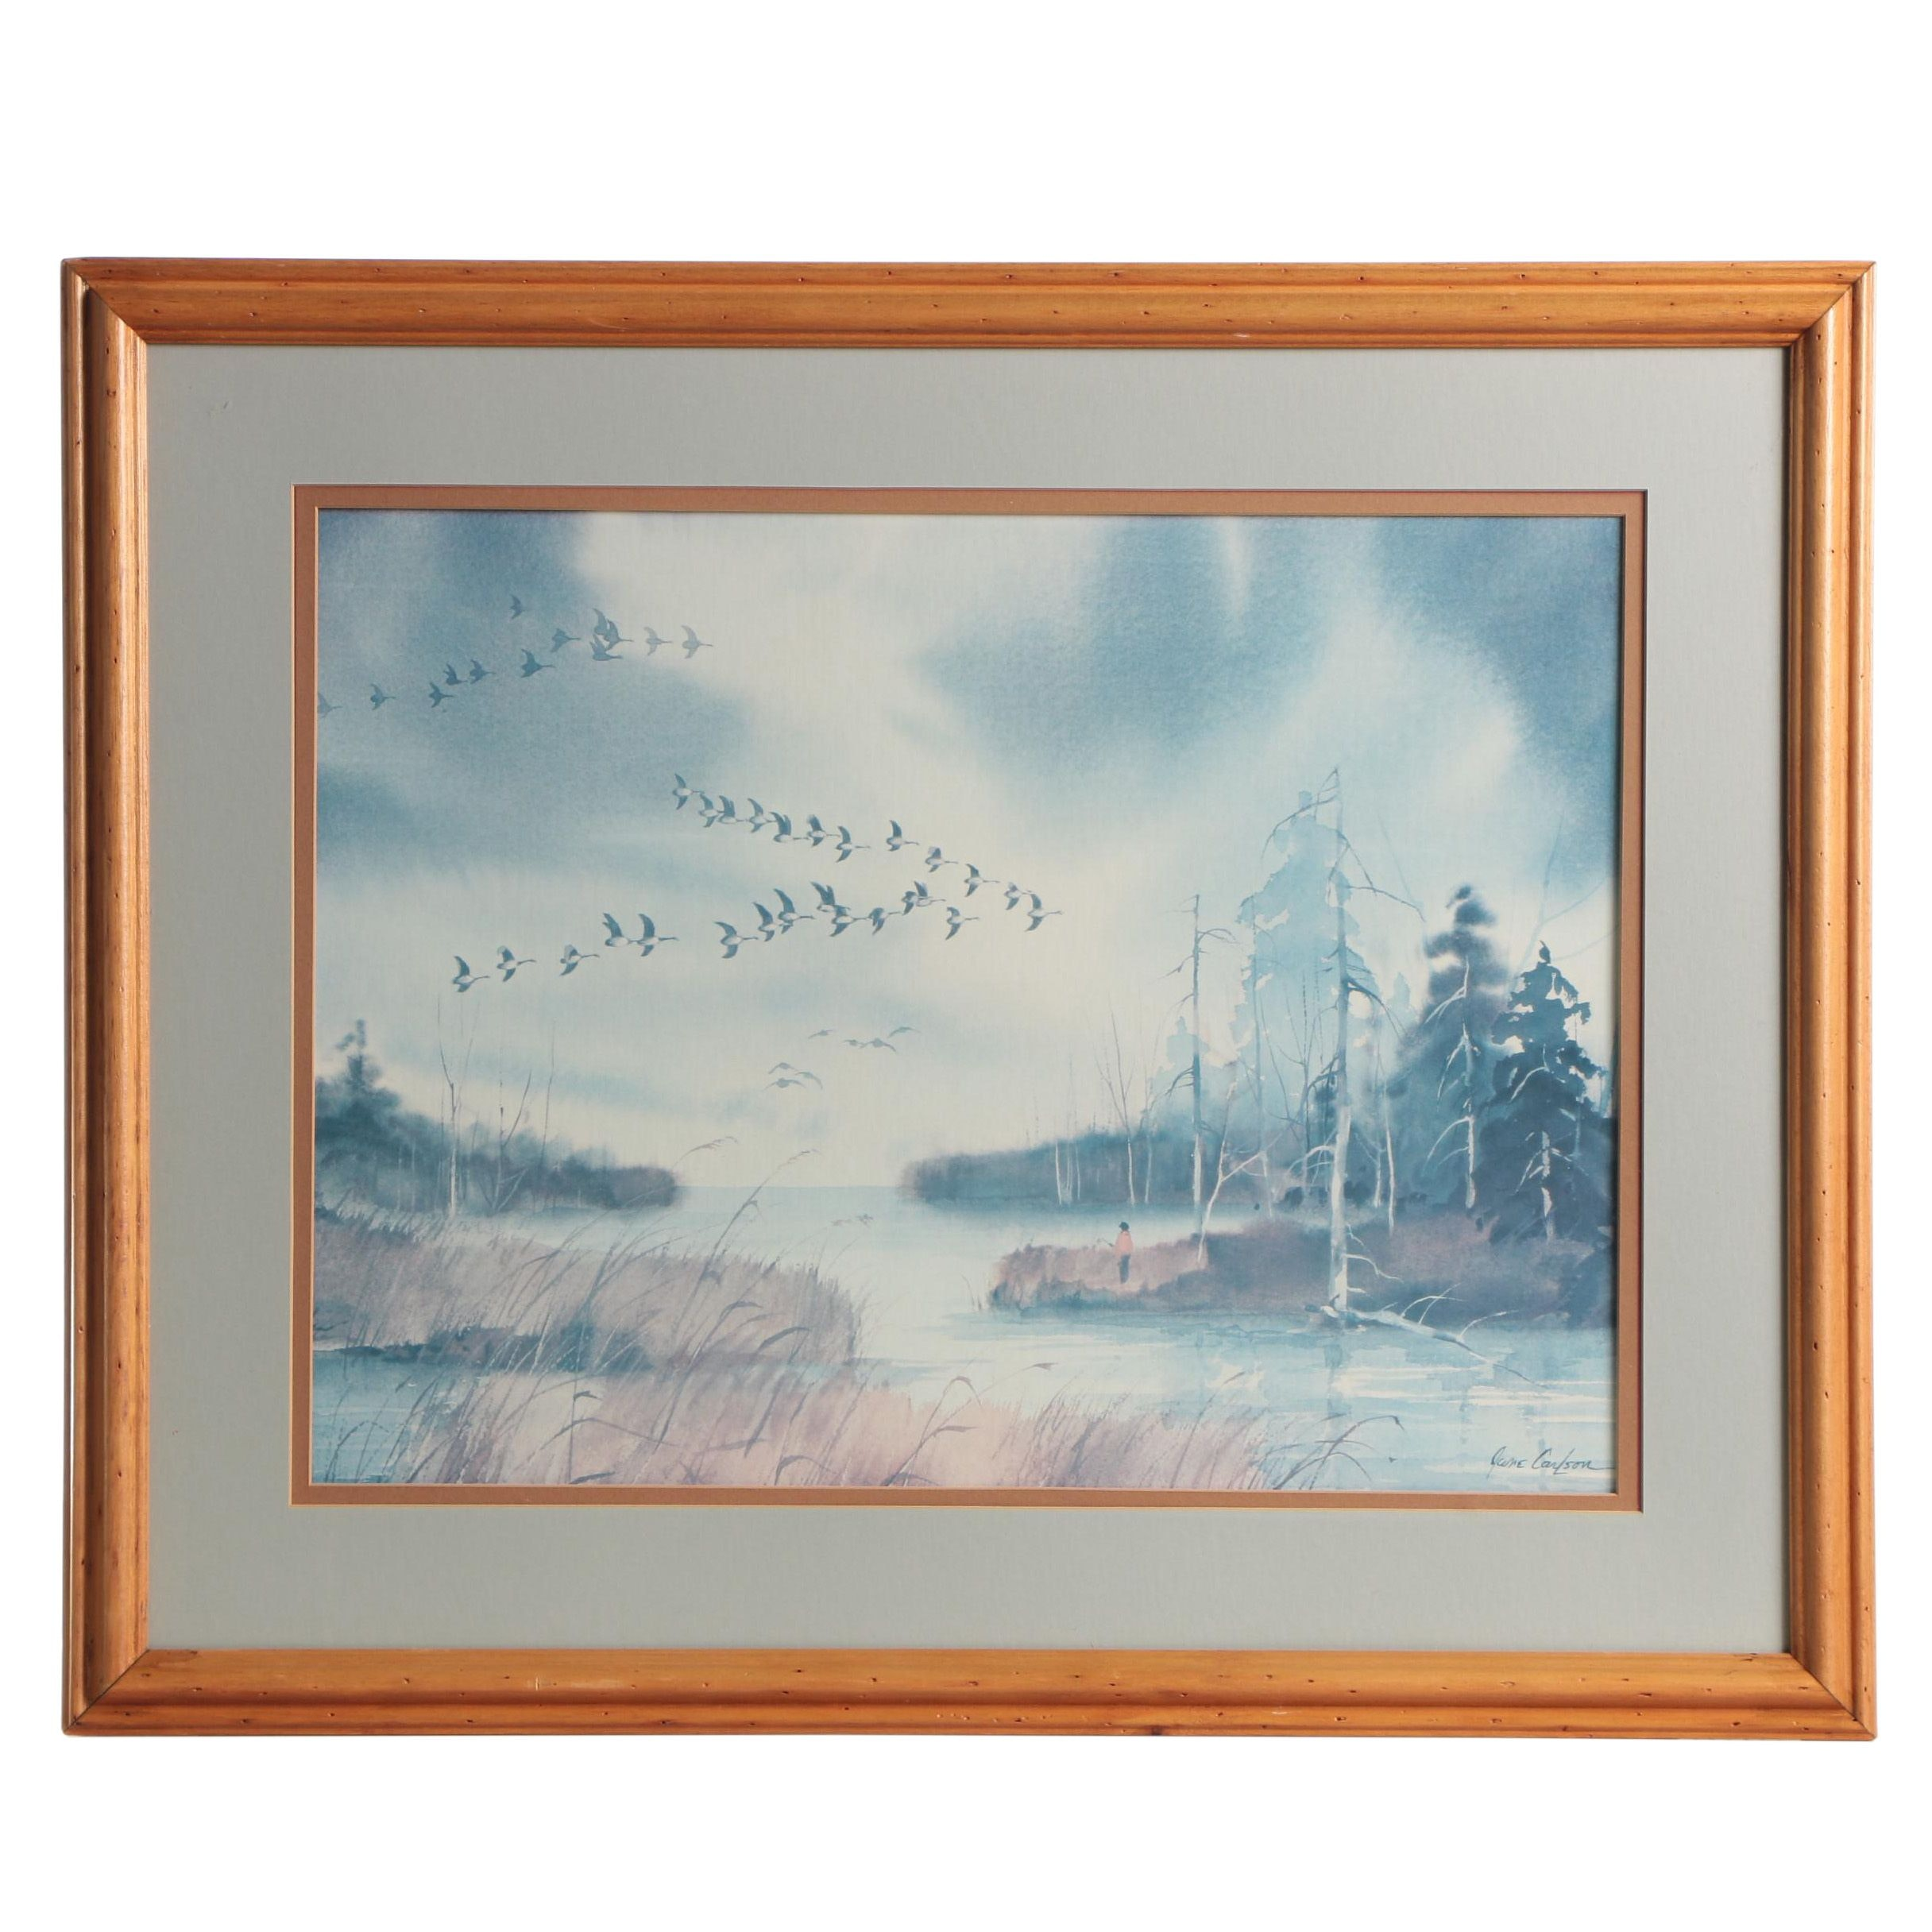 """Offset Lithograph after Jane Carlson """"Flying Geese"""""""